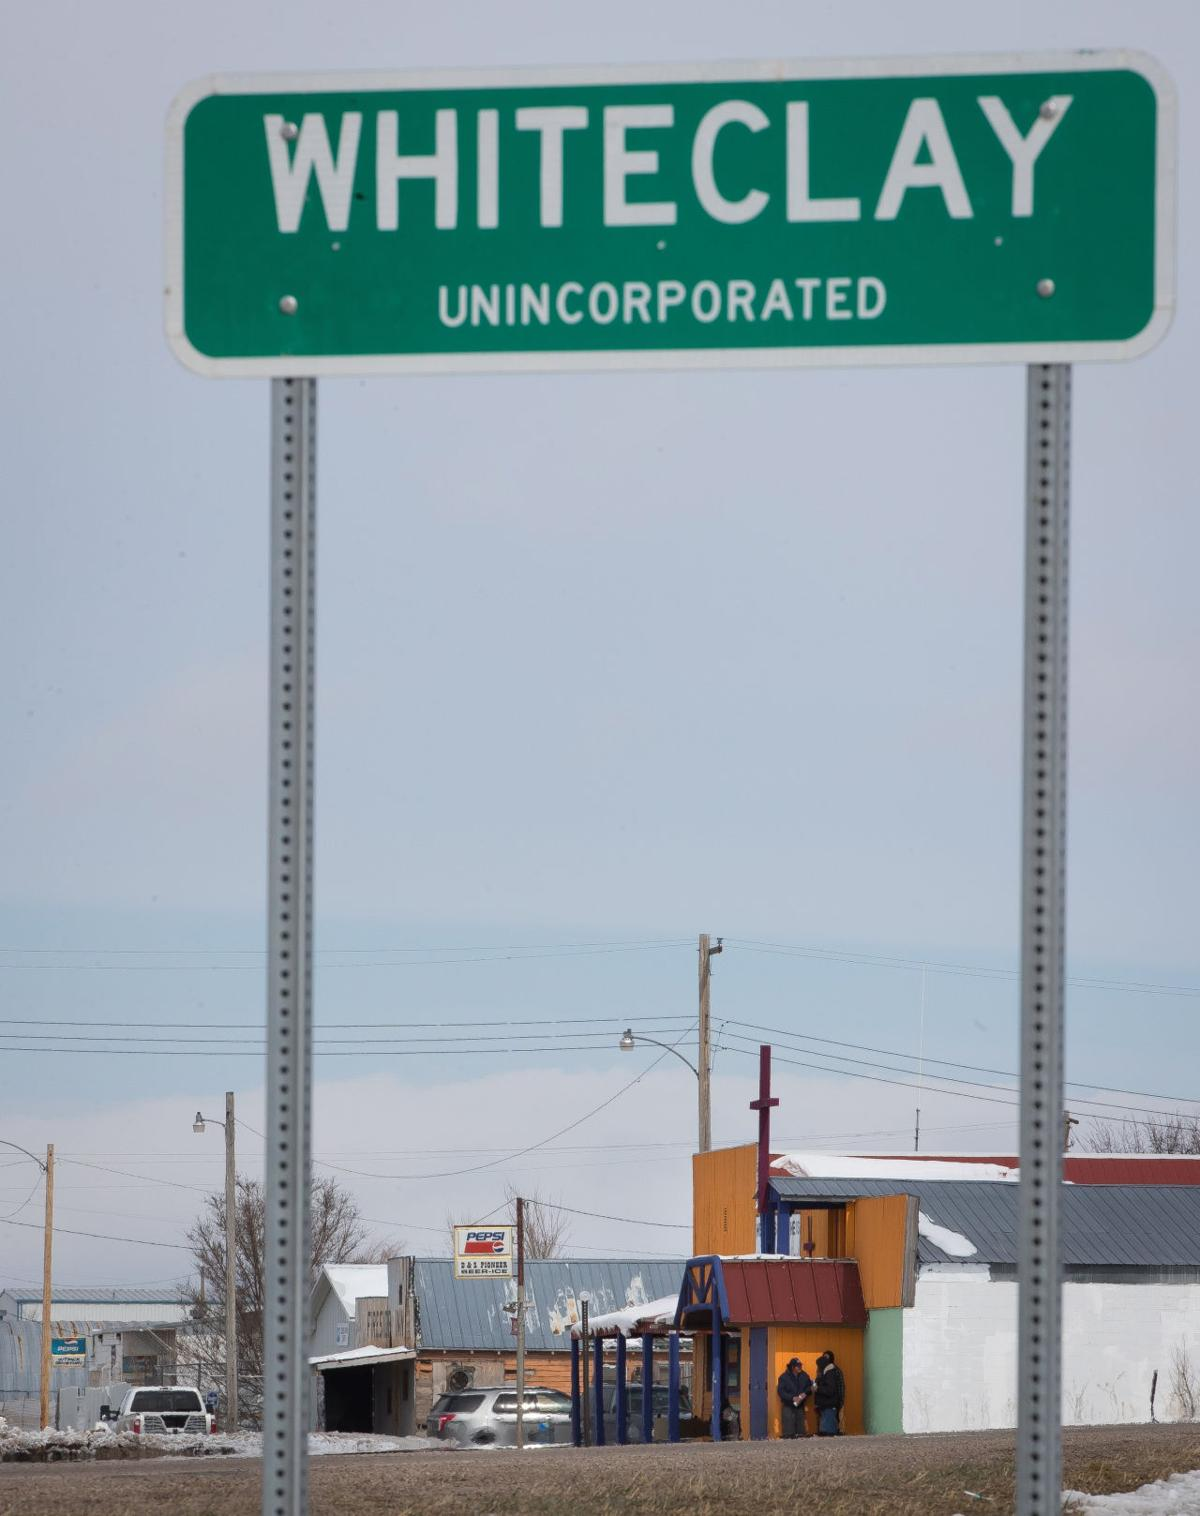 whiteclay singles Meet whiteclay singles online & chat in the forums dhu is a 100% free dating site to find personals & casual encounters in whiteclay.